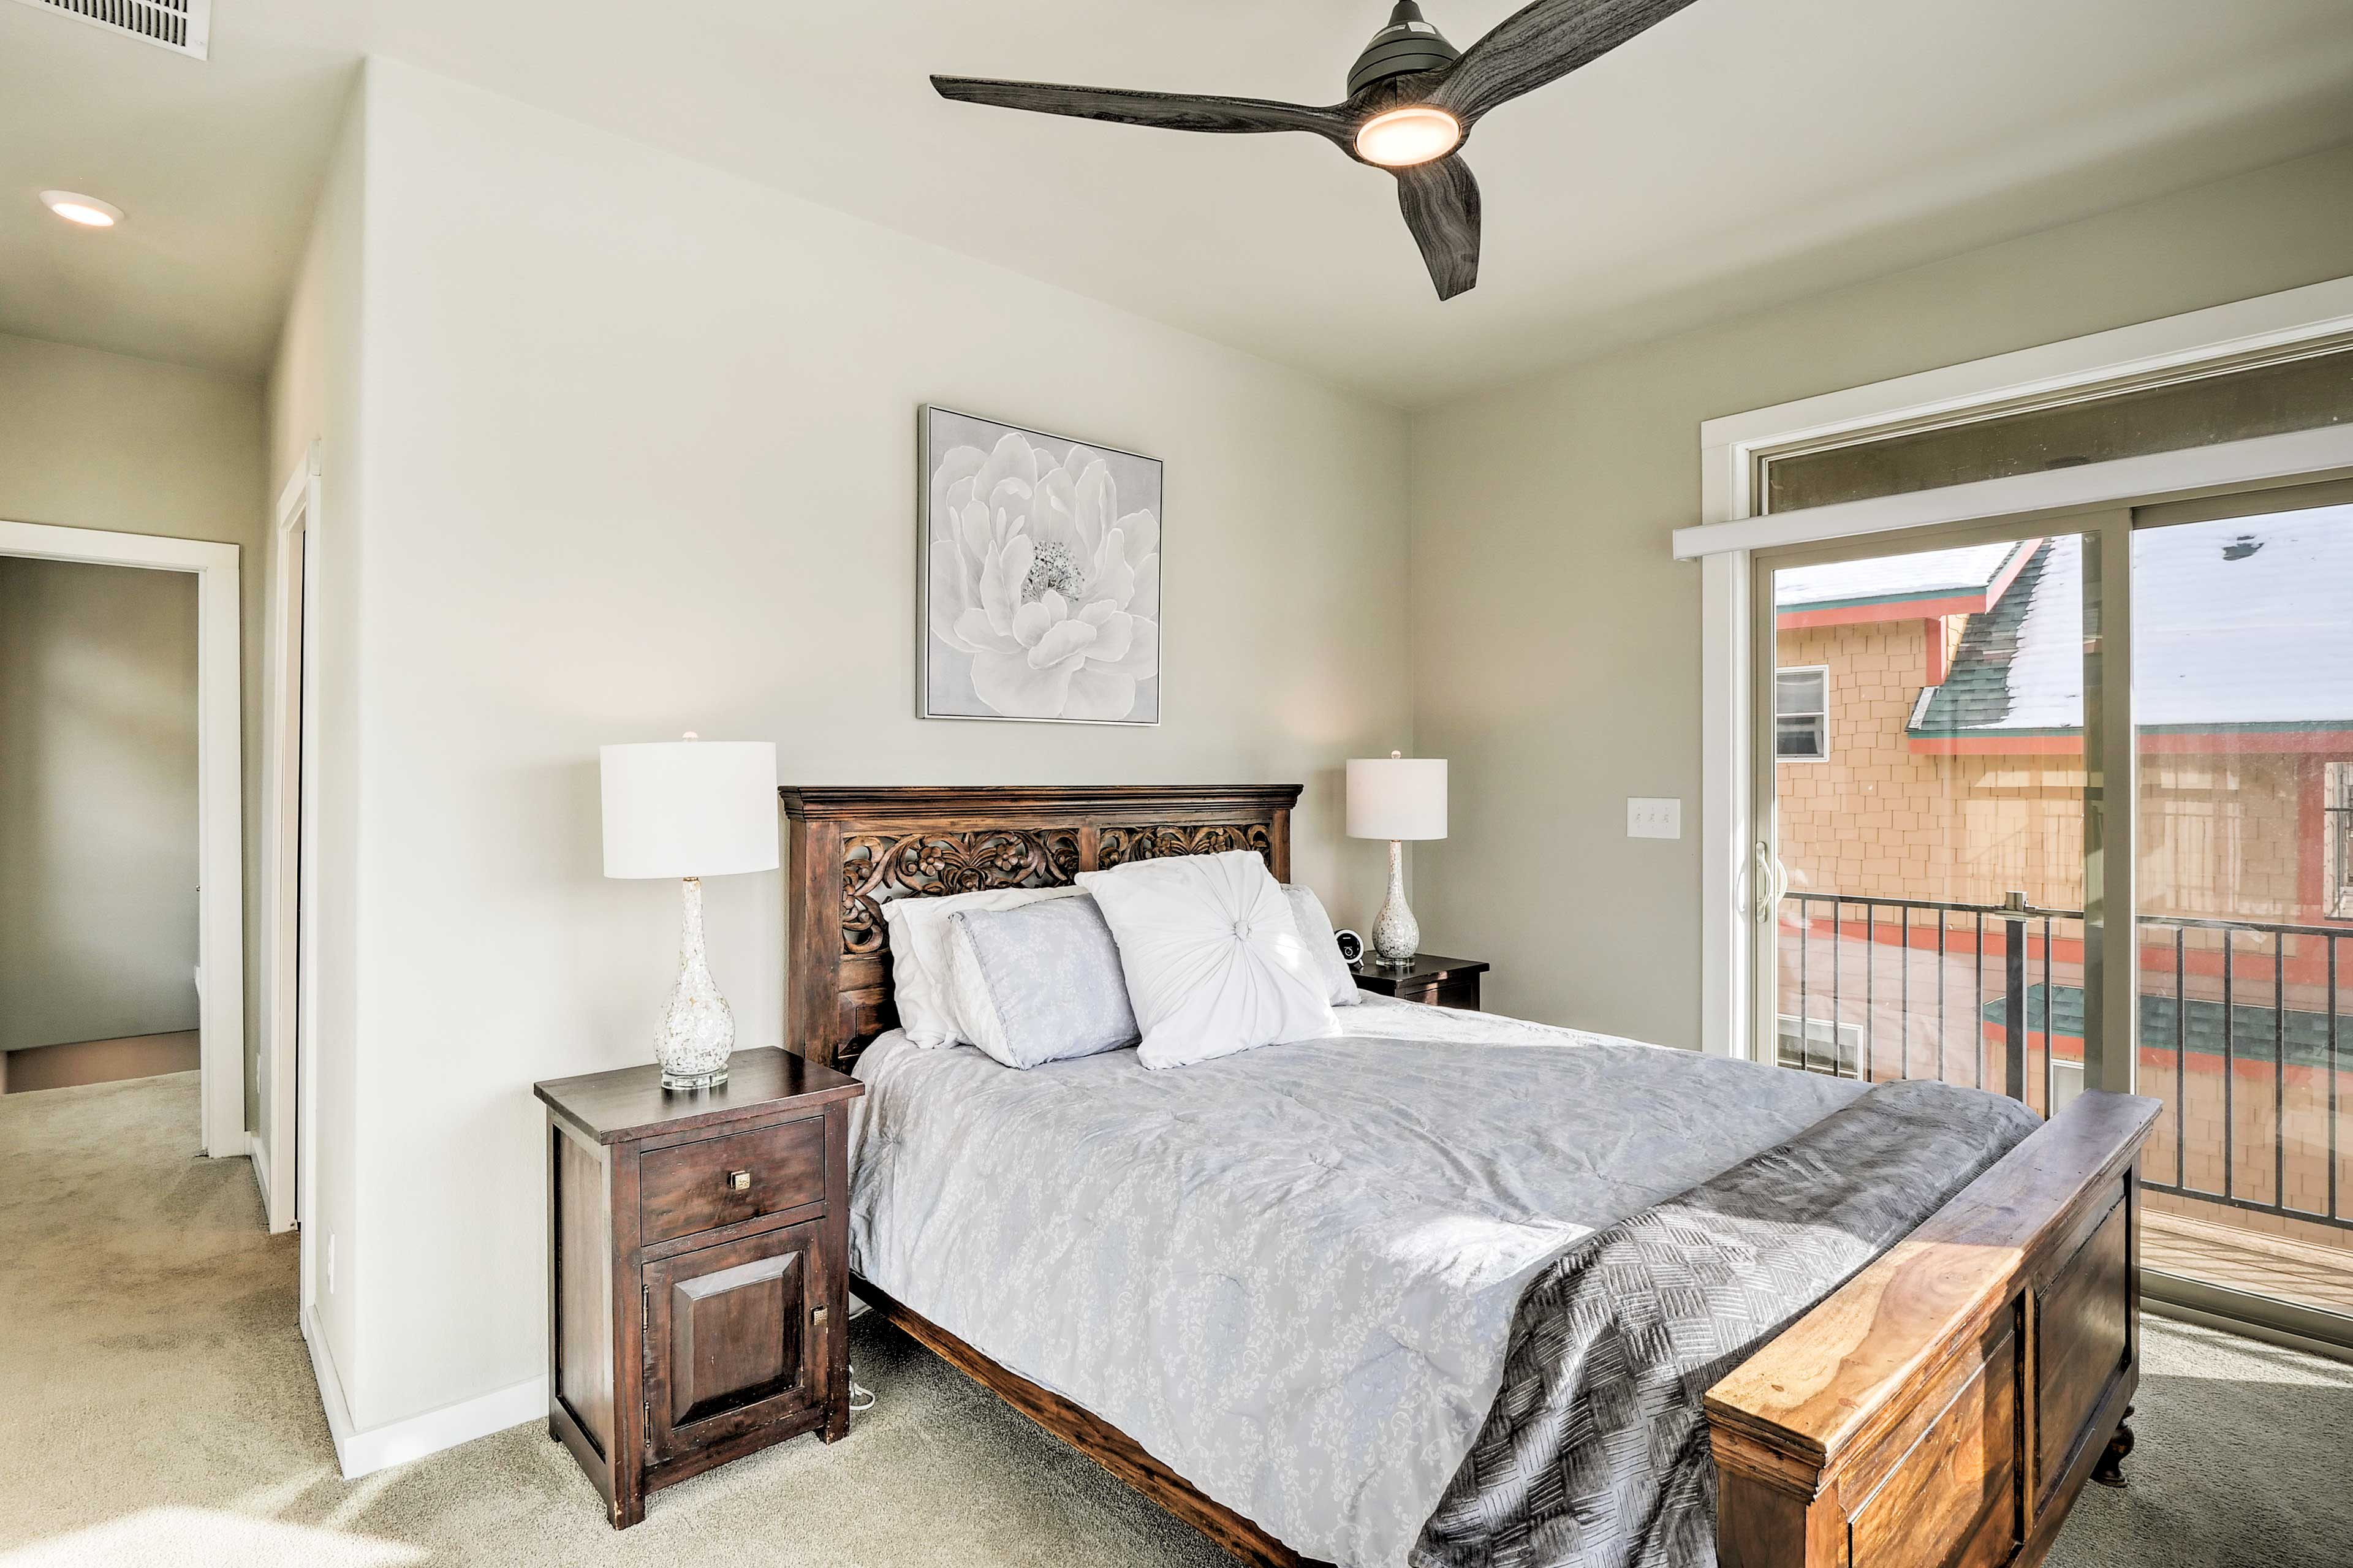 Another queen bed highlights this last bedroom.